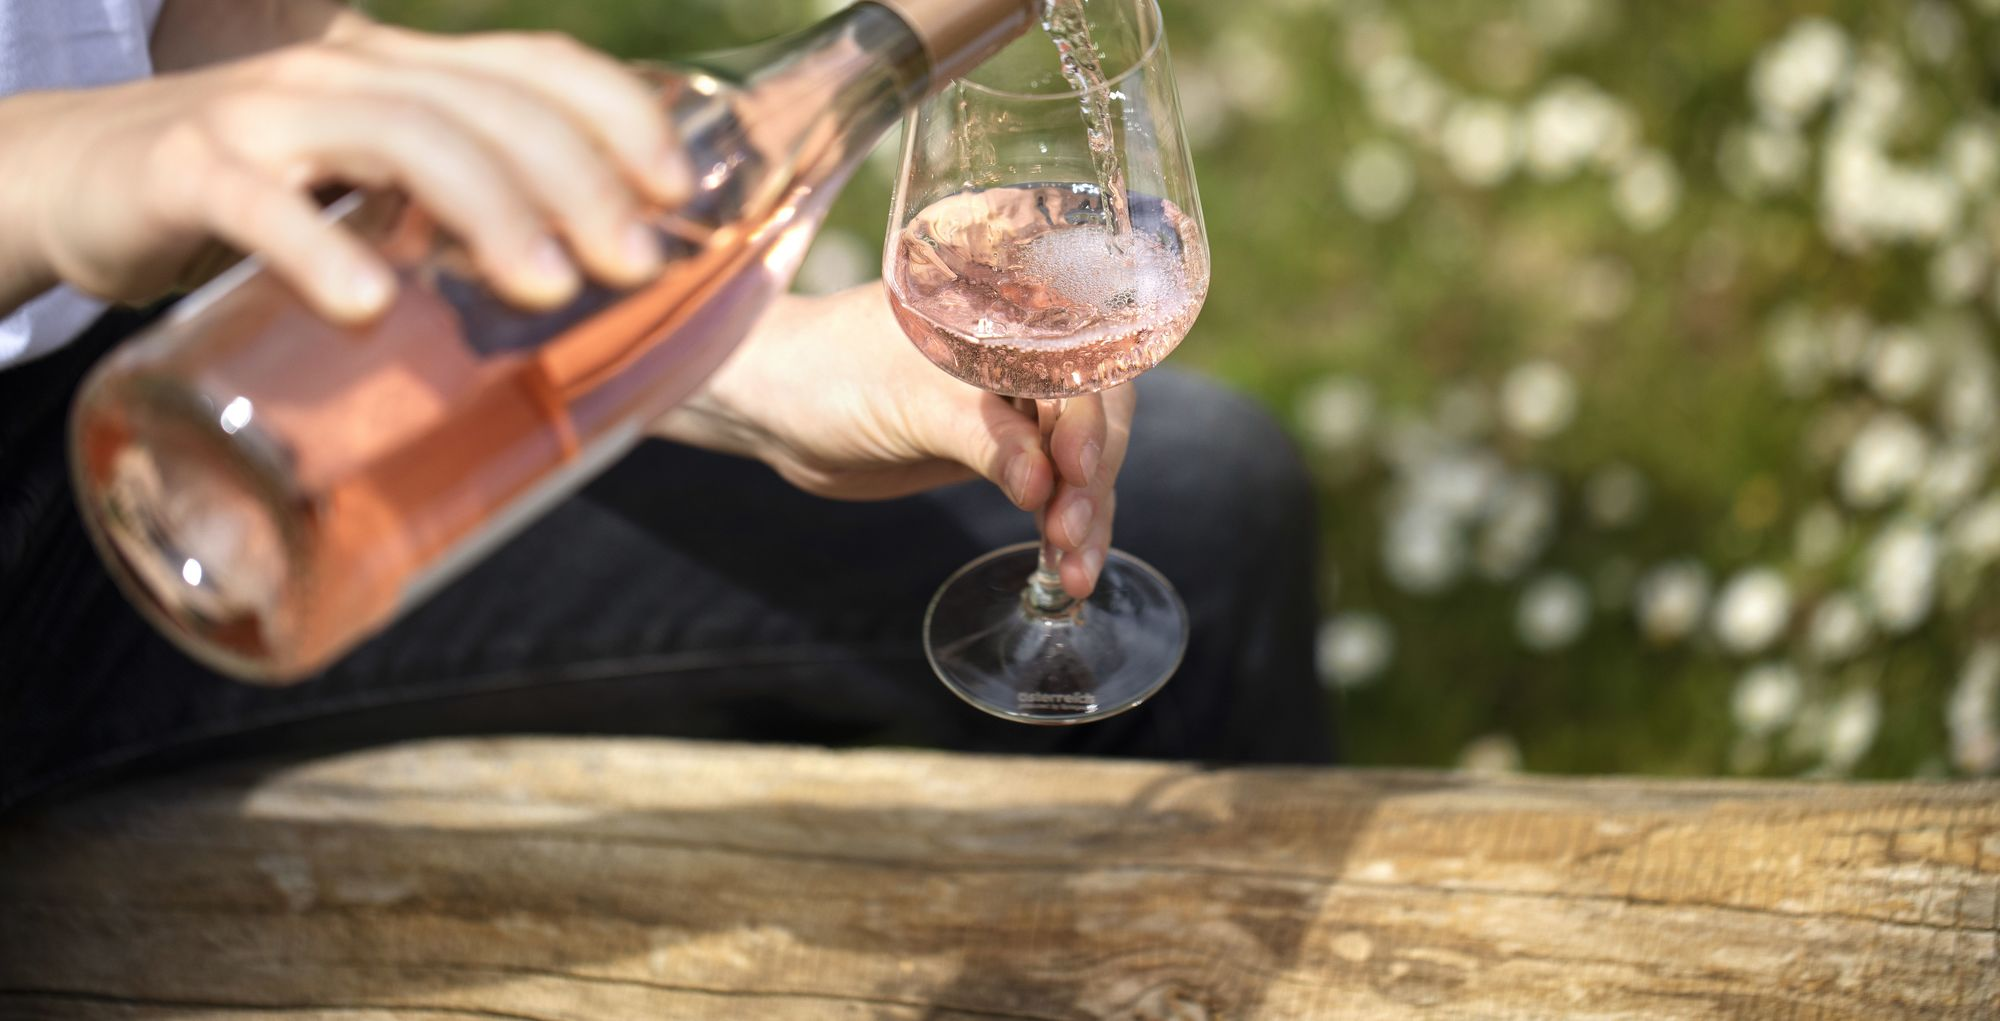 A woman is pouring Rosé from a bottle into a glass.